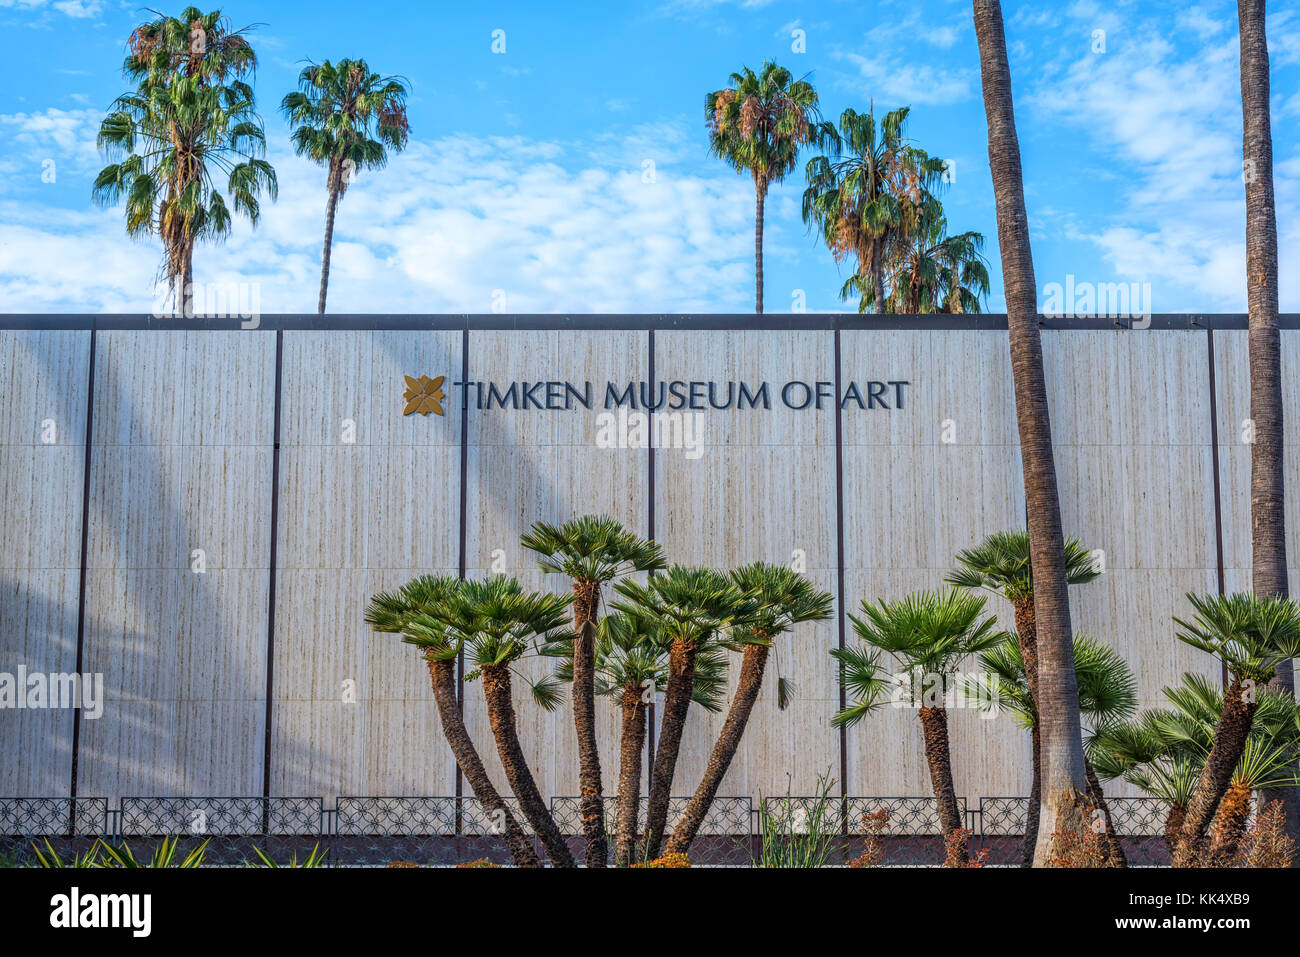 The Timken Museum of Art building at Balboa Park. San Diego, California. - Stock Image